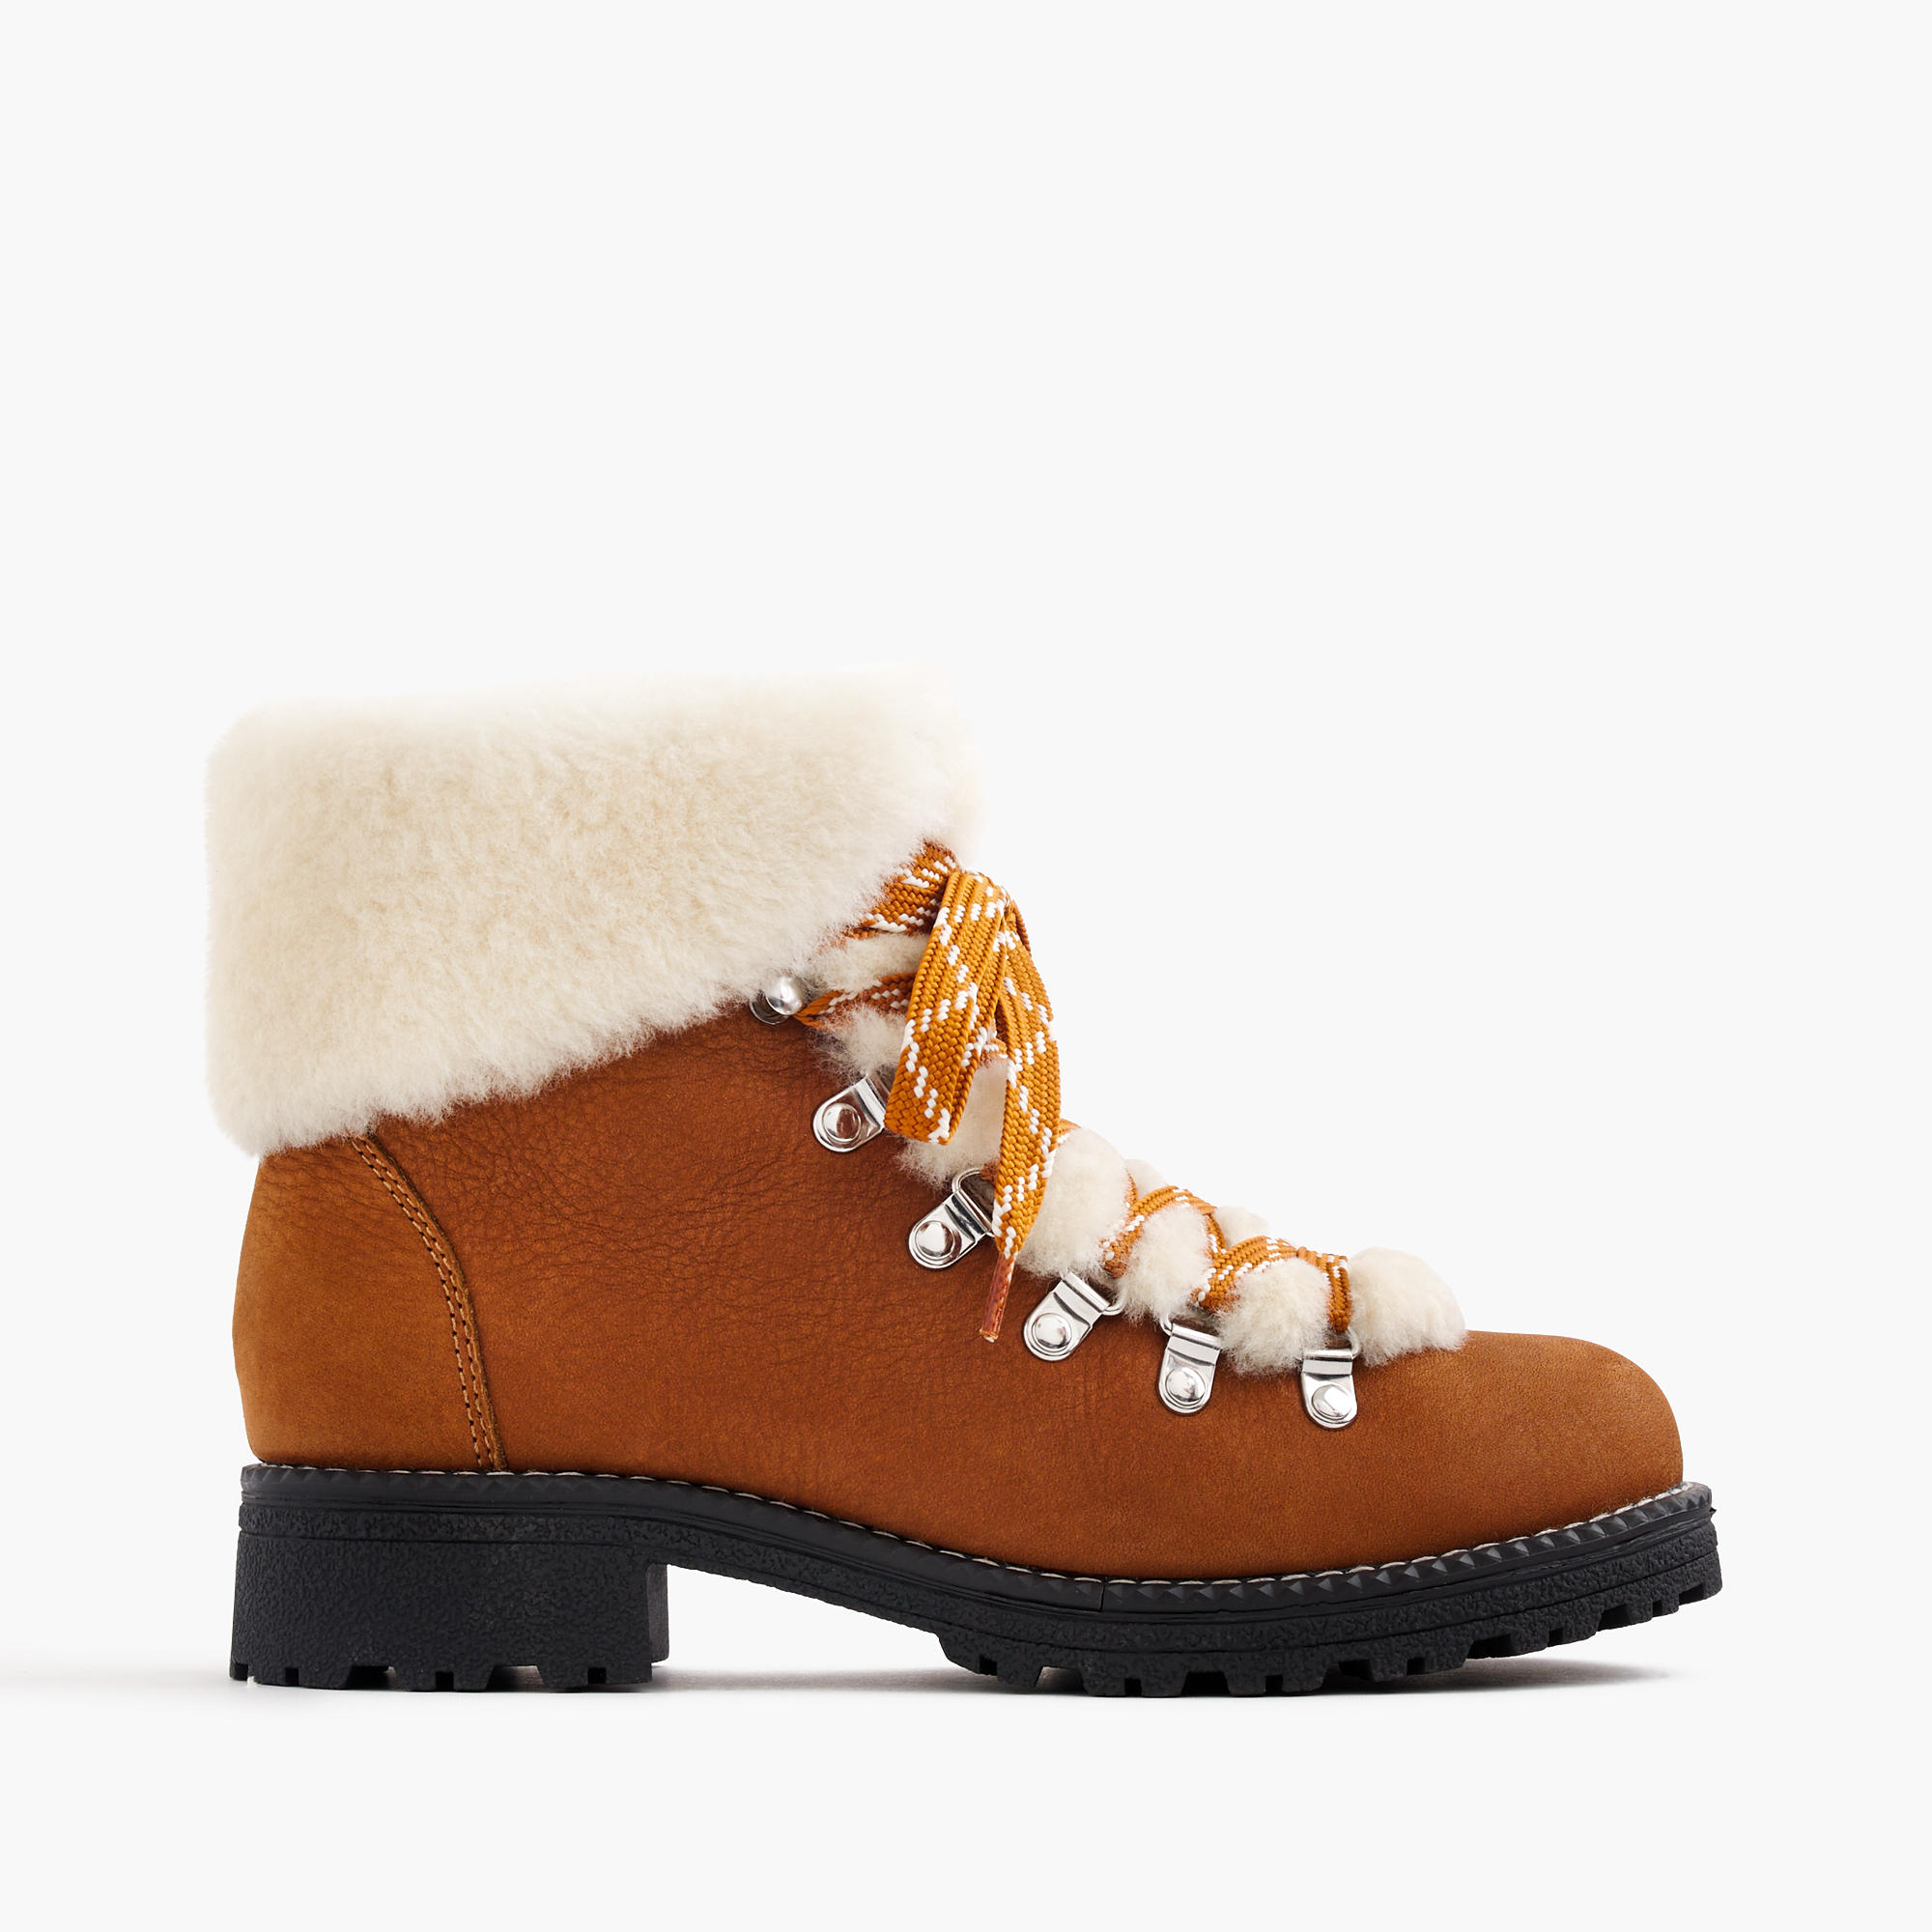 Nordic Boots : Women's Boots